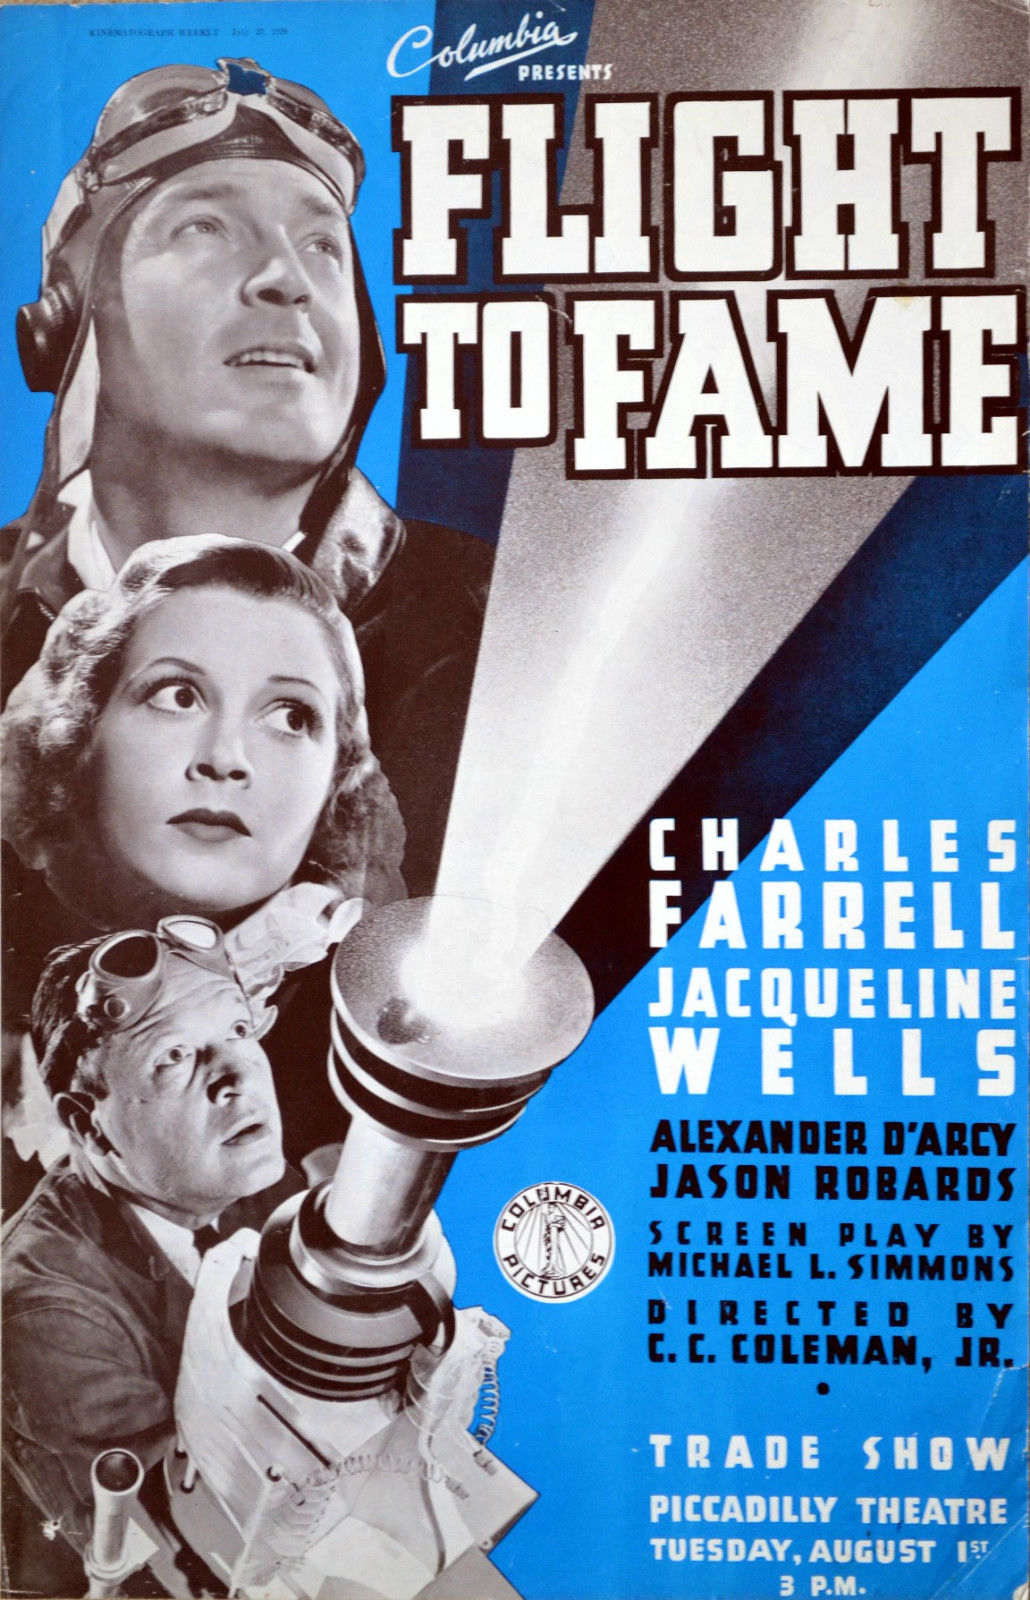 Julie Bishop, Charles Farrell, and Jason Robards Sr. in Flight to Fame (1938)